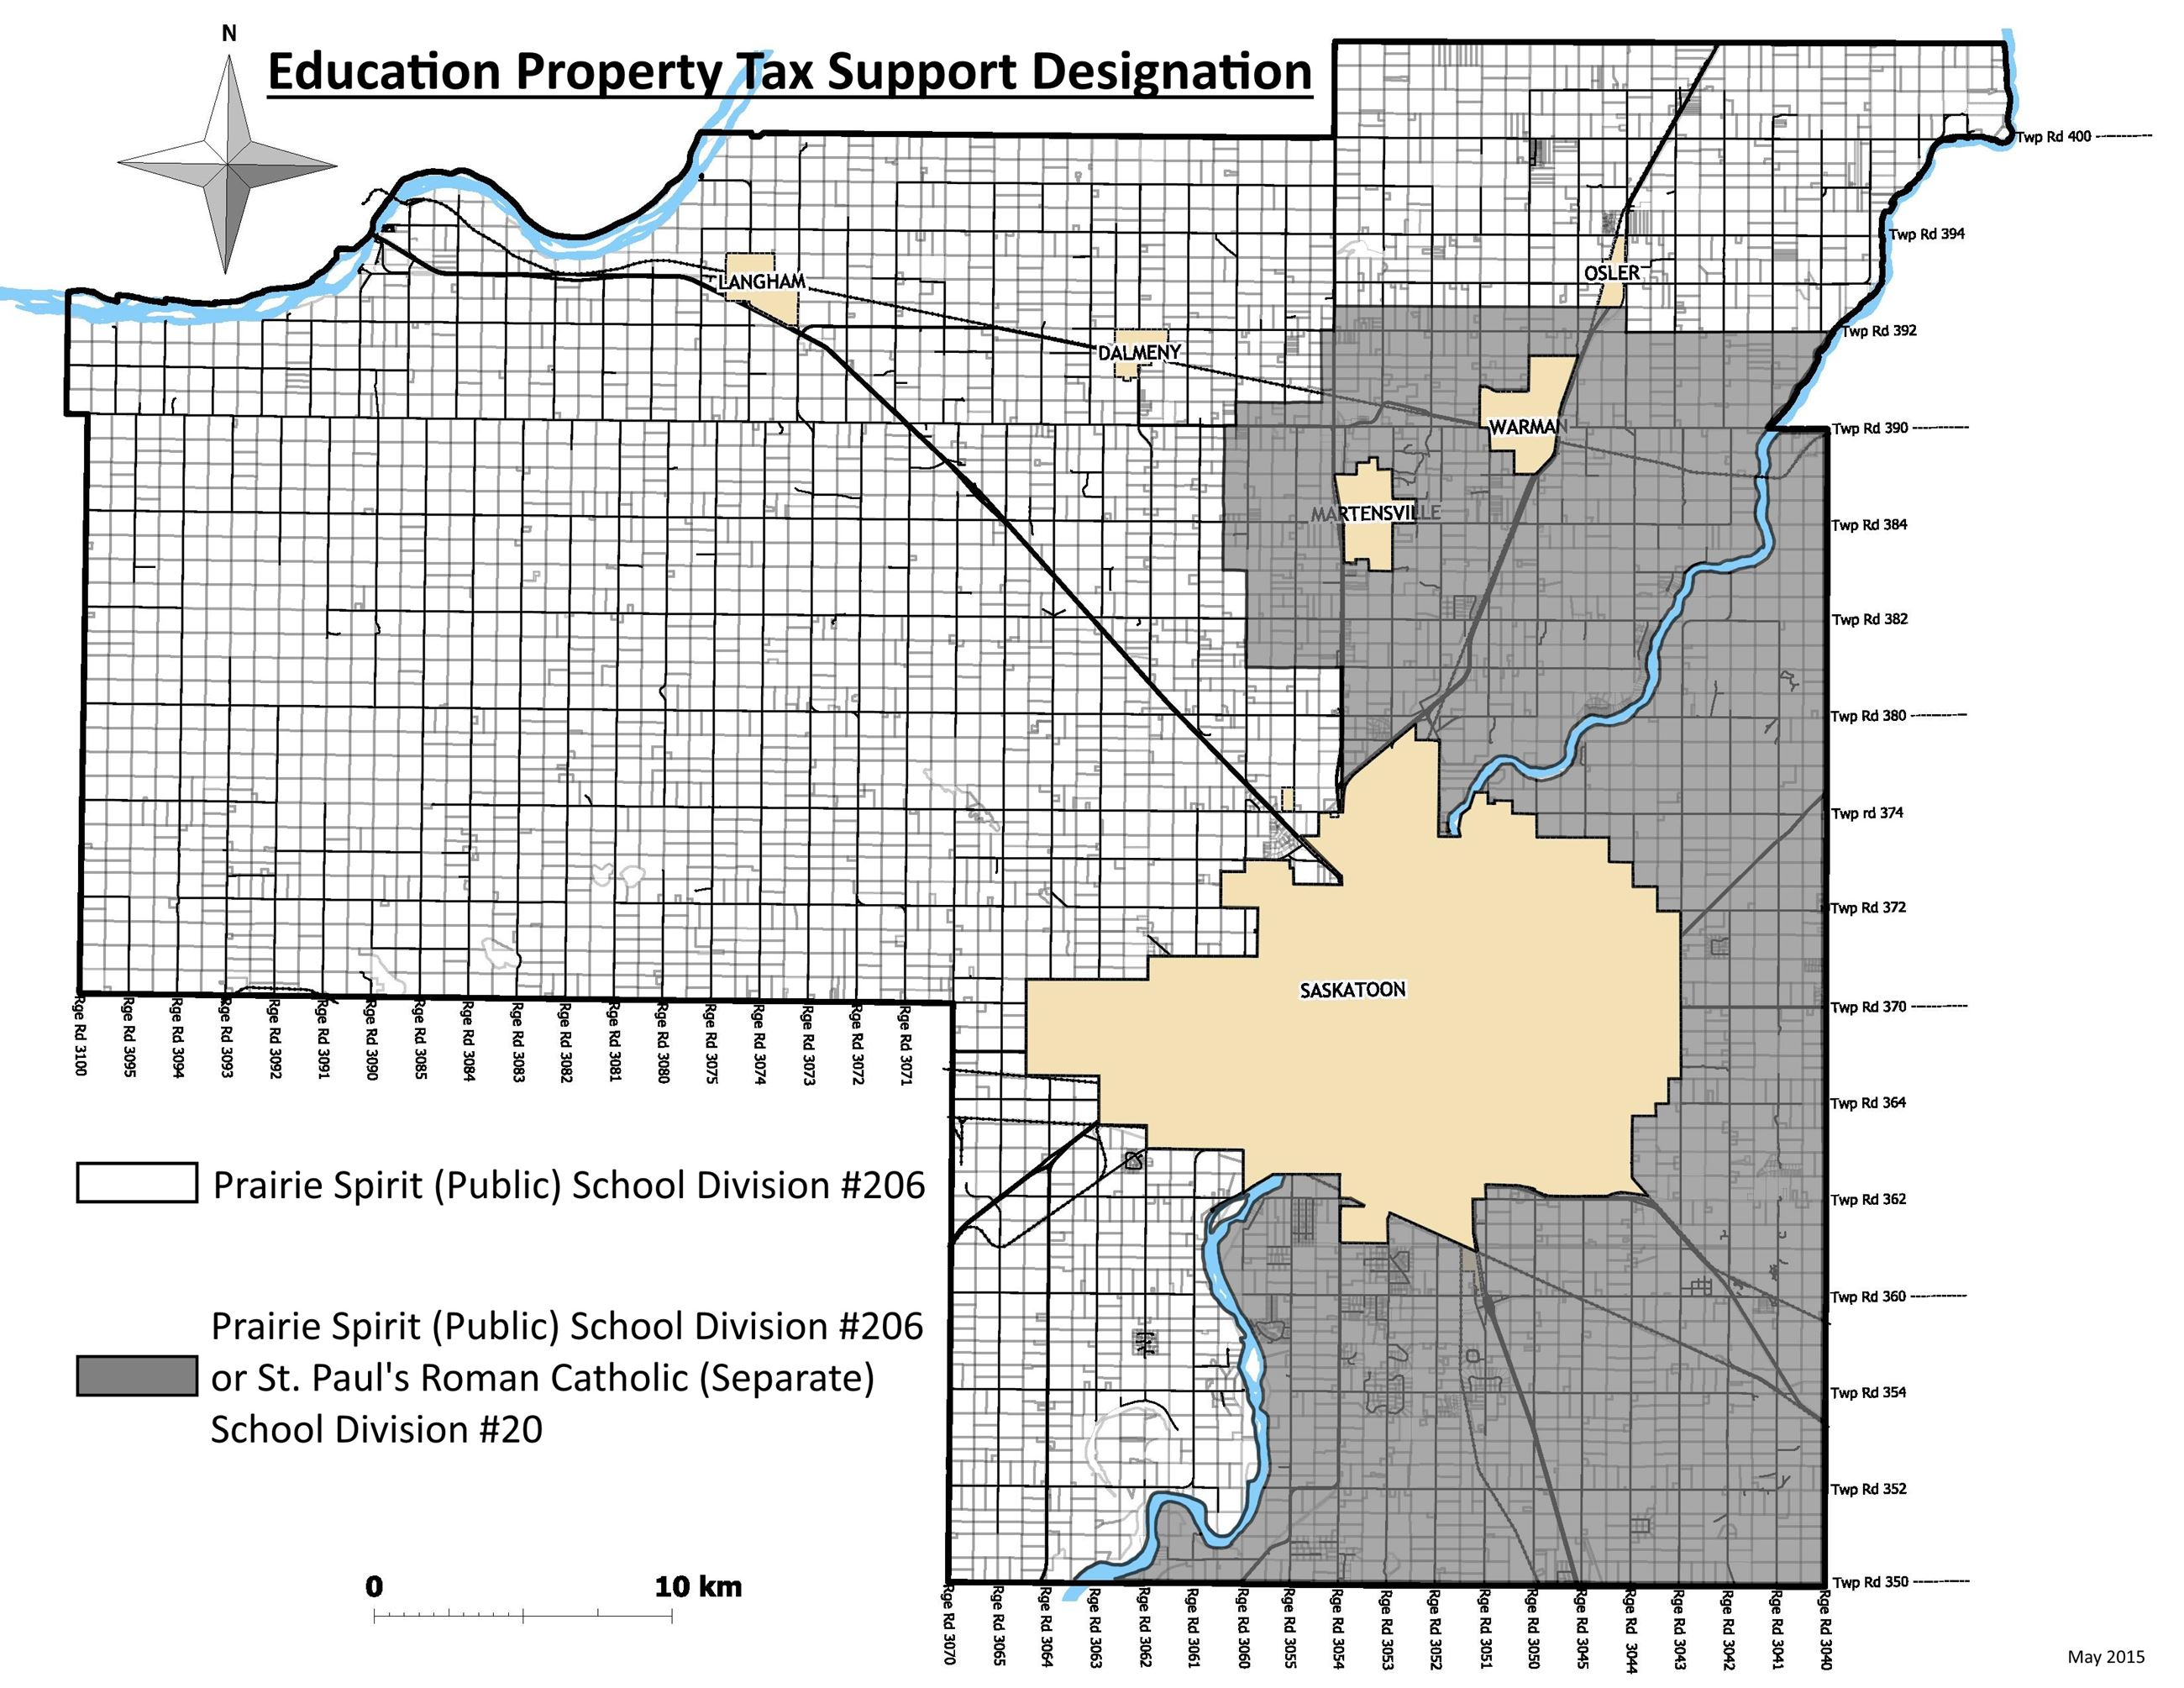 2015 Education Property Tax Support Designation Map